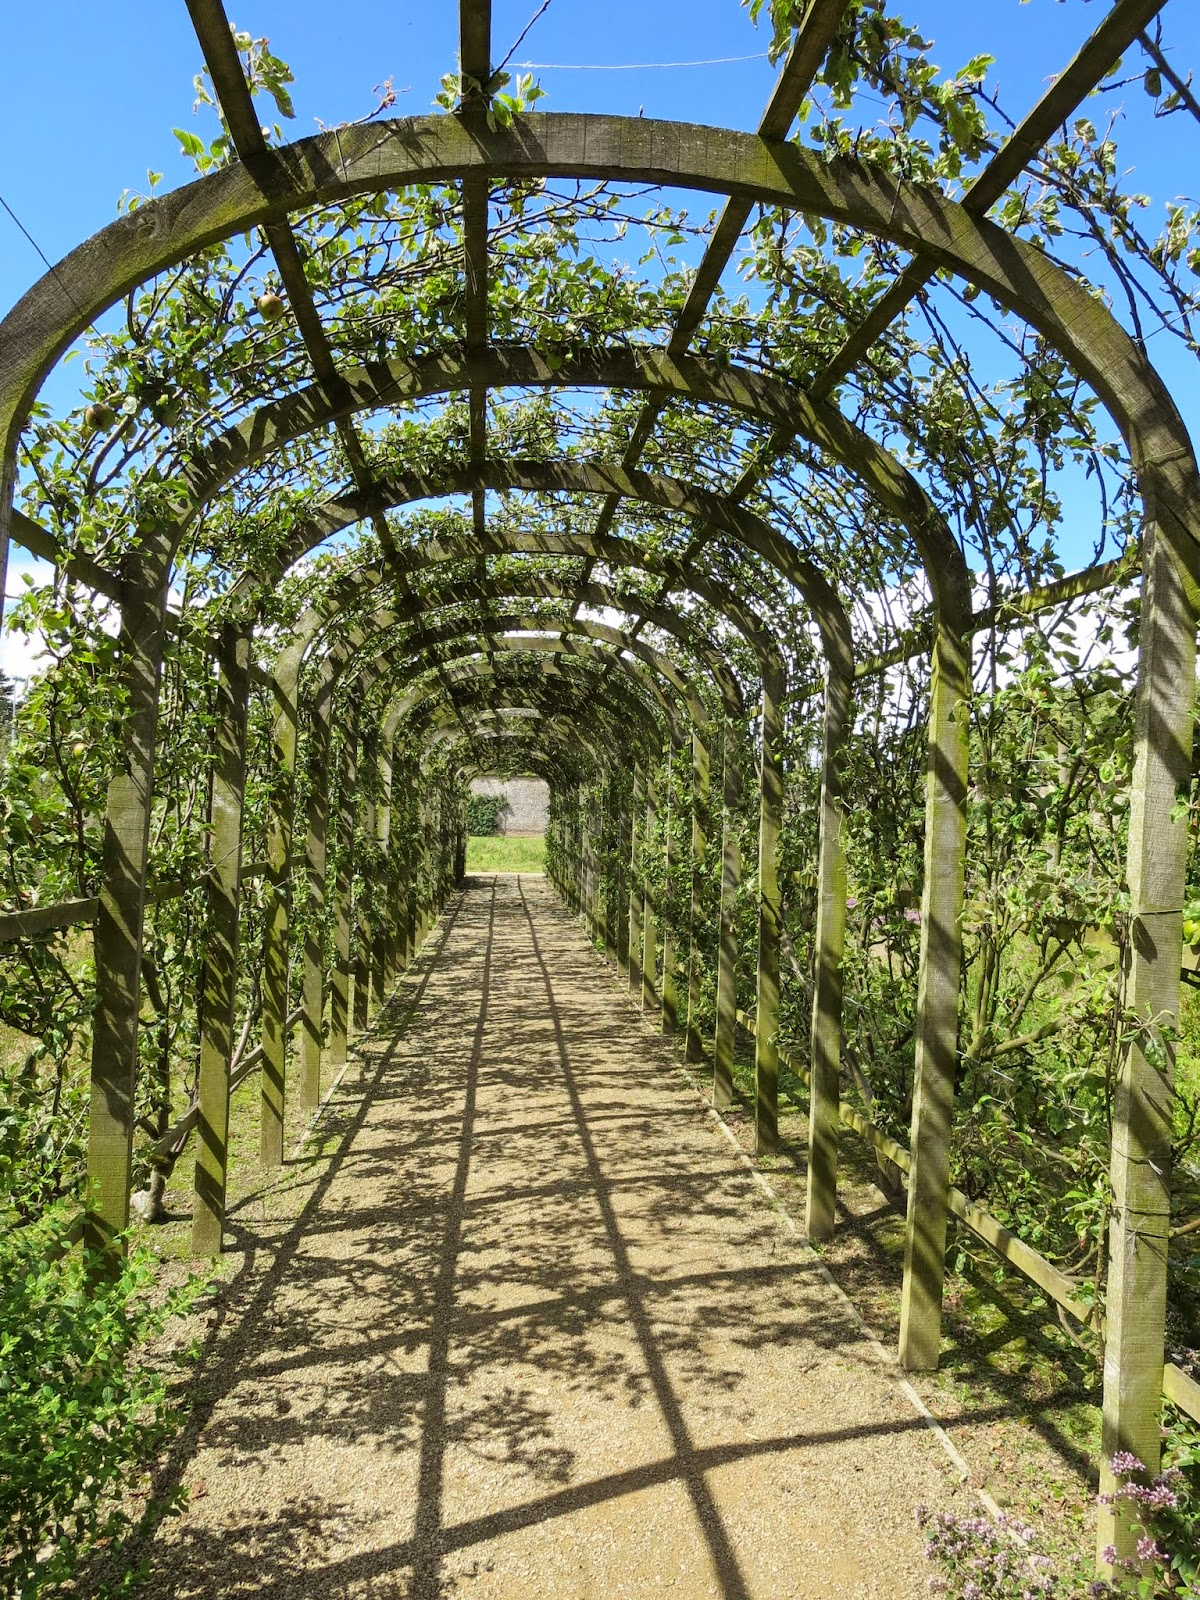 Trellis supporting apple and pear plants in the walled garden in Marlay Park